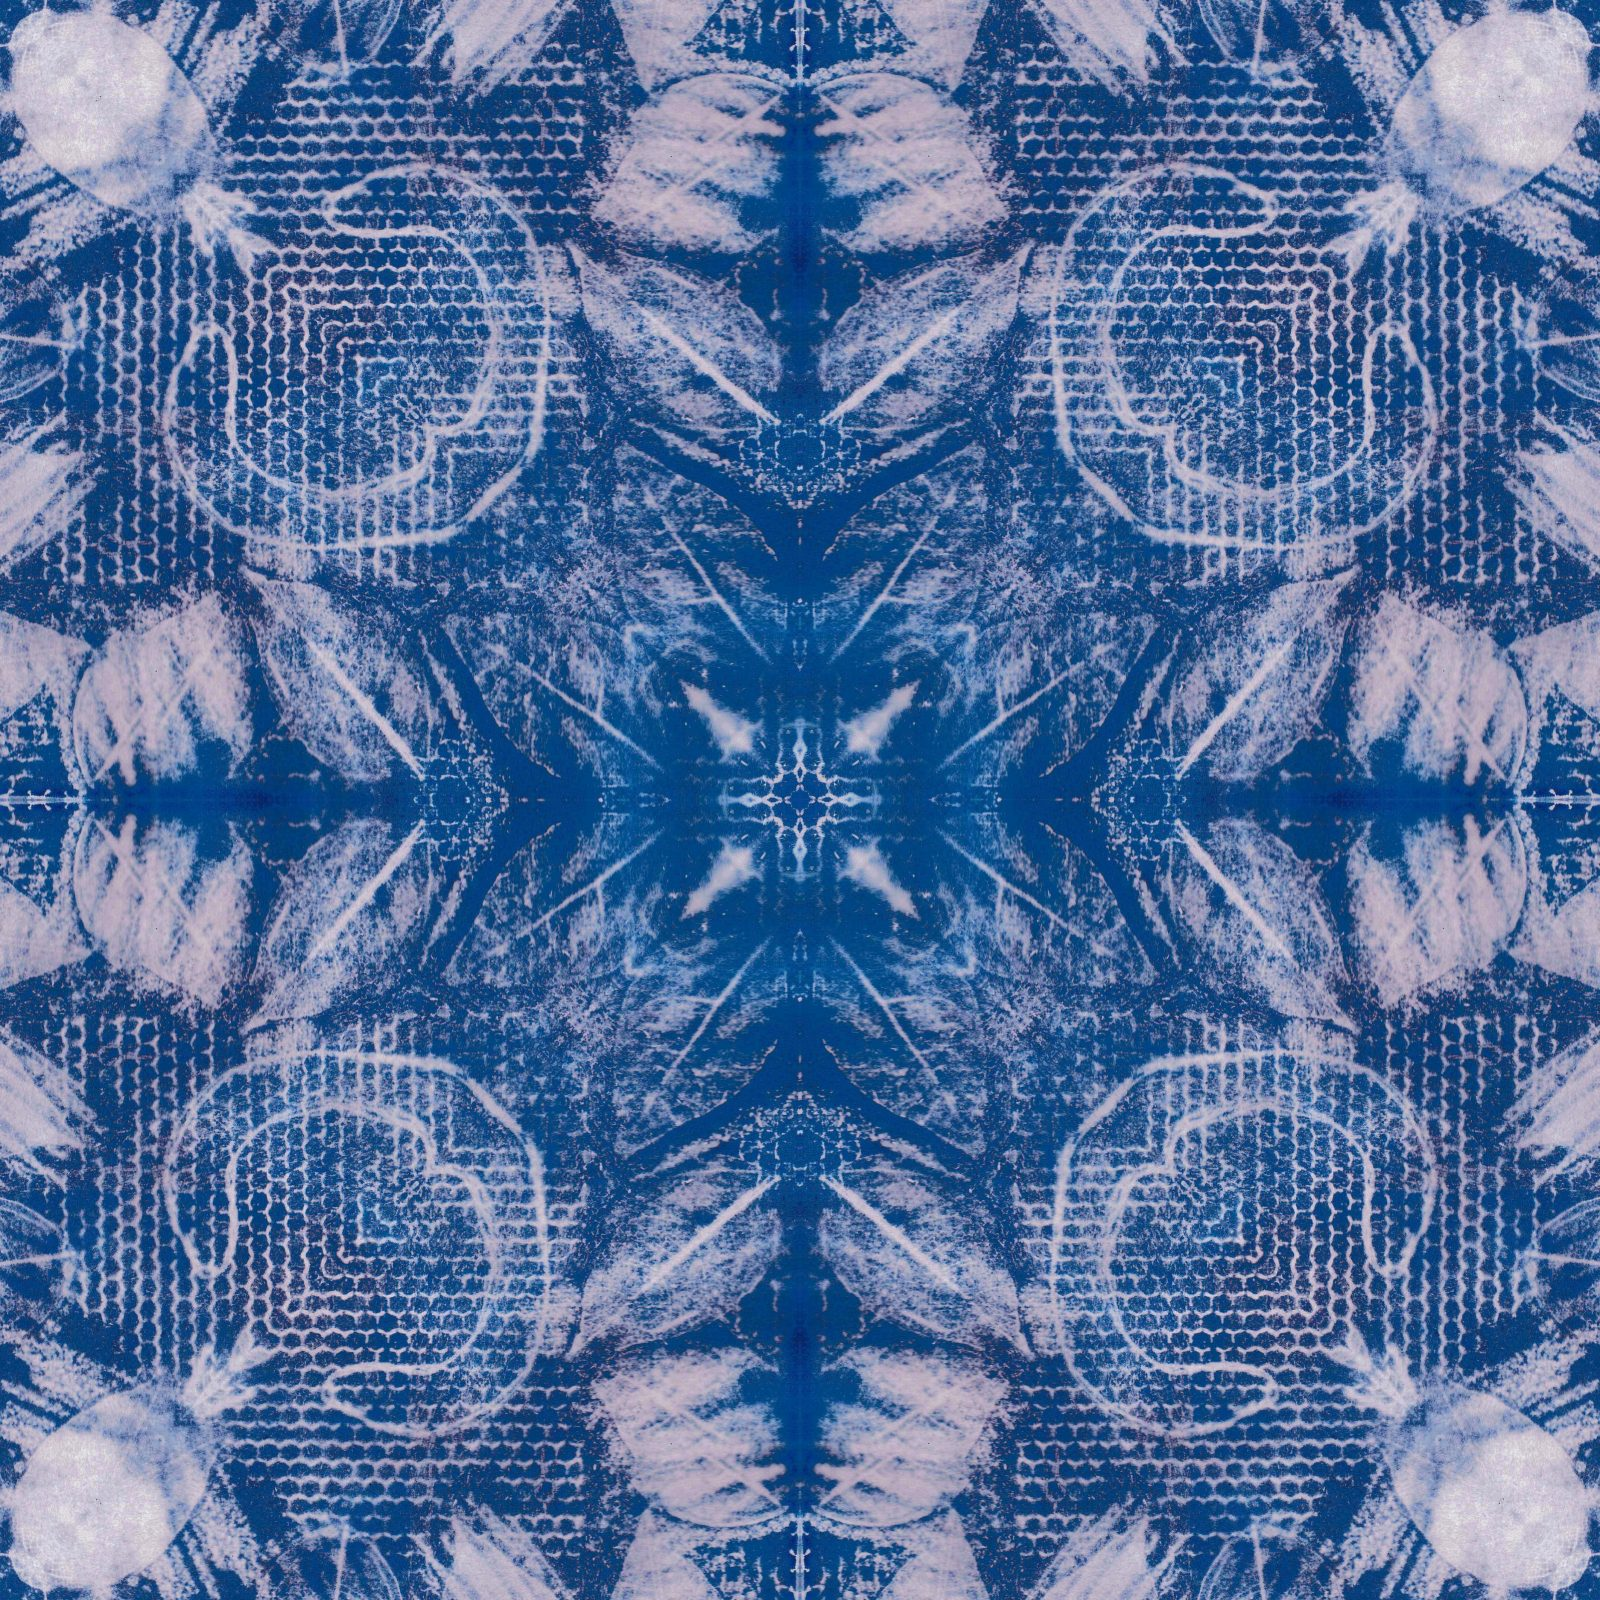 A square blanket decorated with an inky blue design